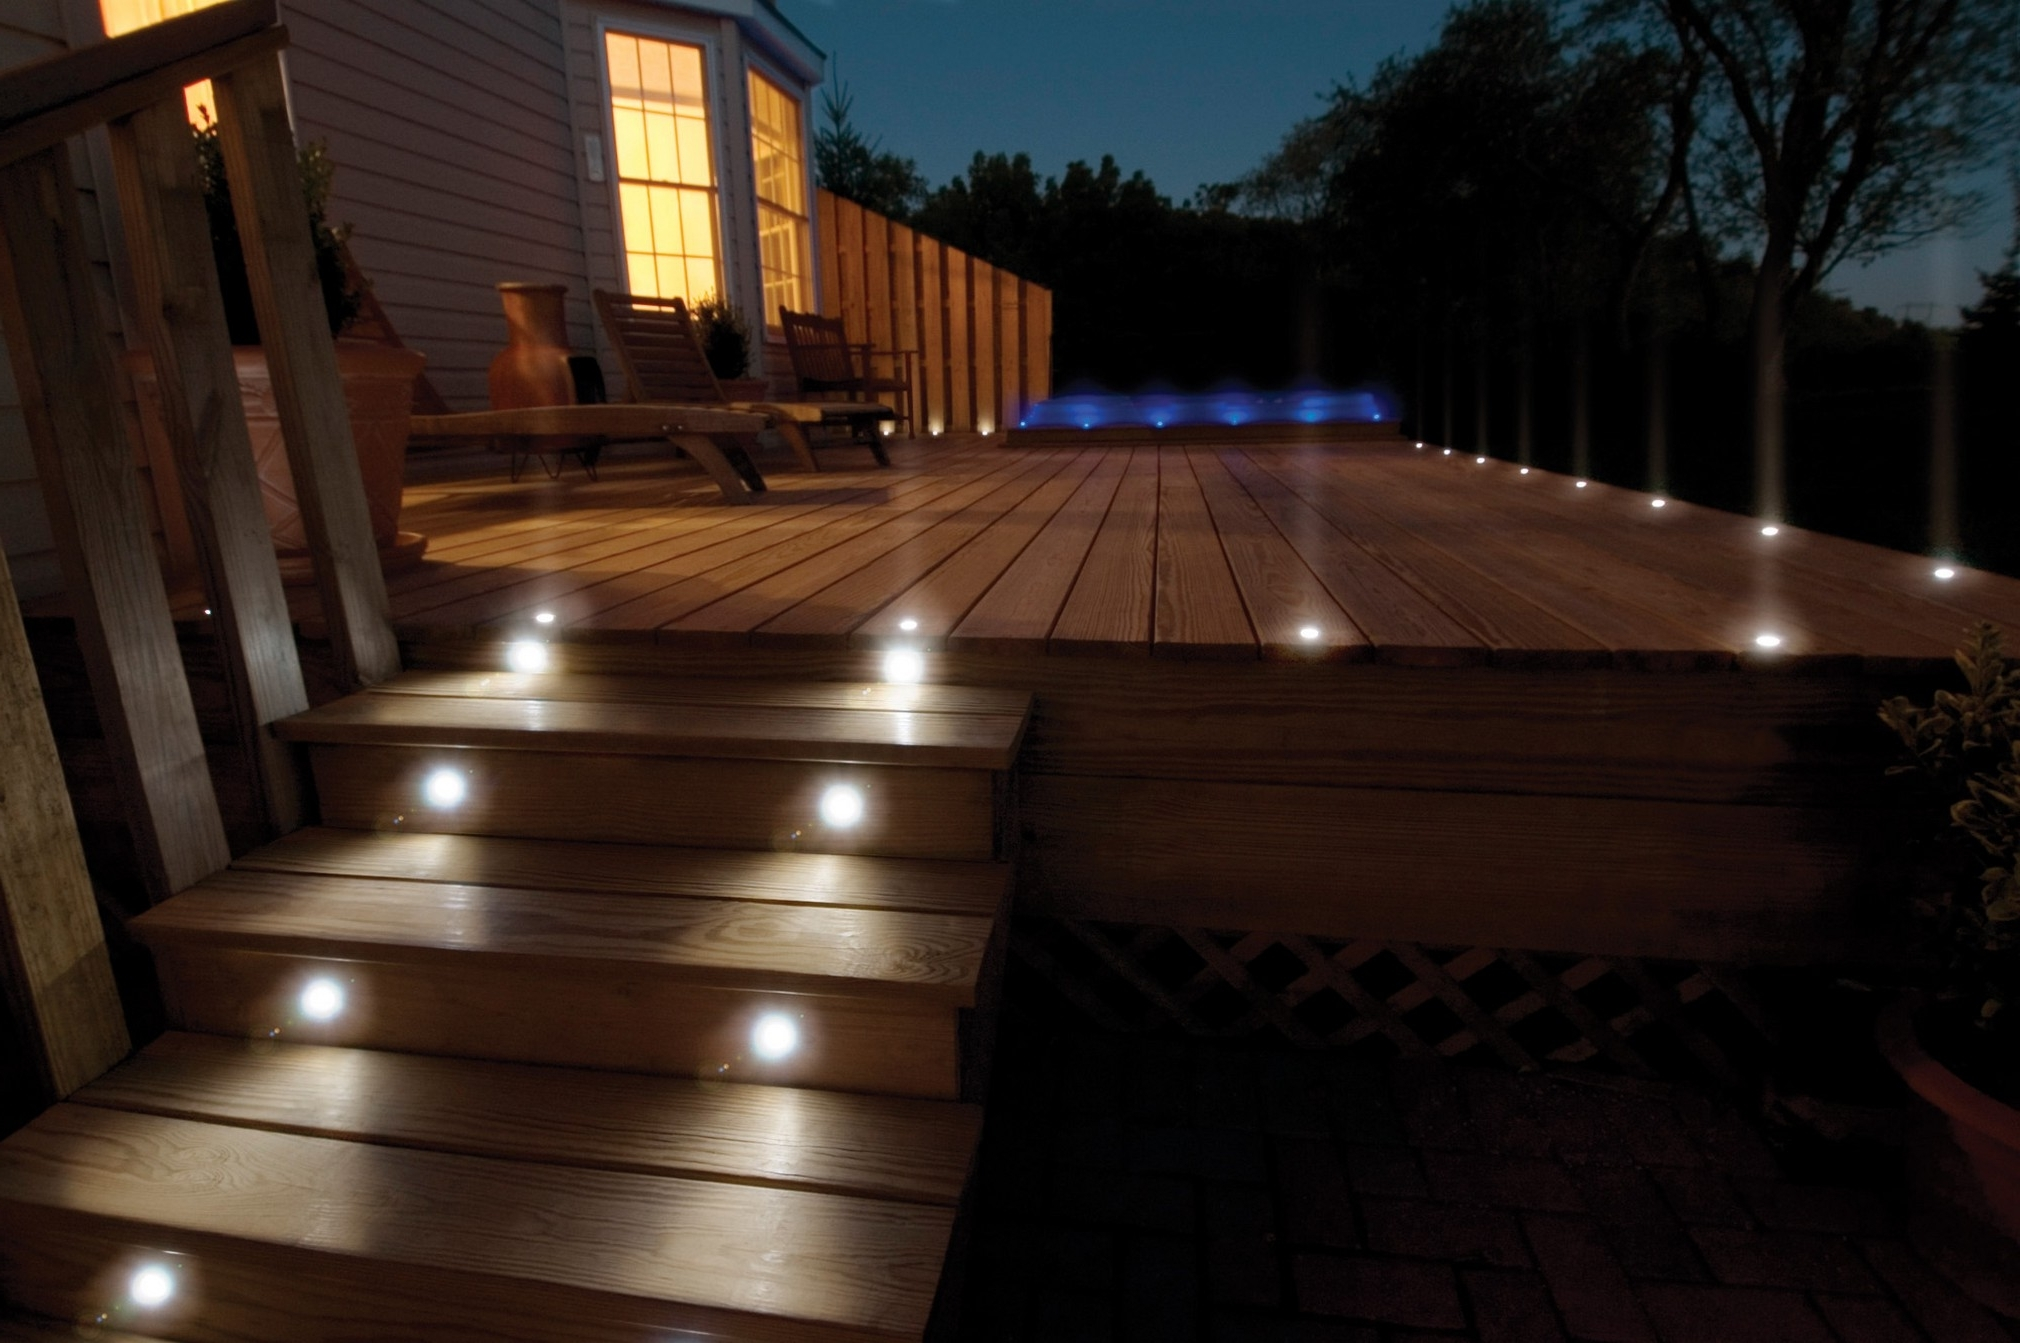 Well Known Outdoor Deck Lighting In Security Projects With Reflector — Three Inside Outdoor Ground Lanterns (View 19 of 20)